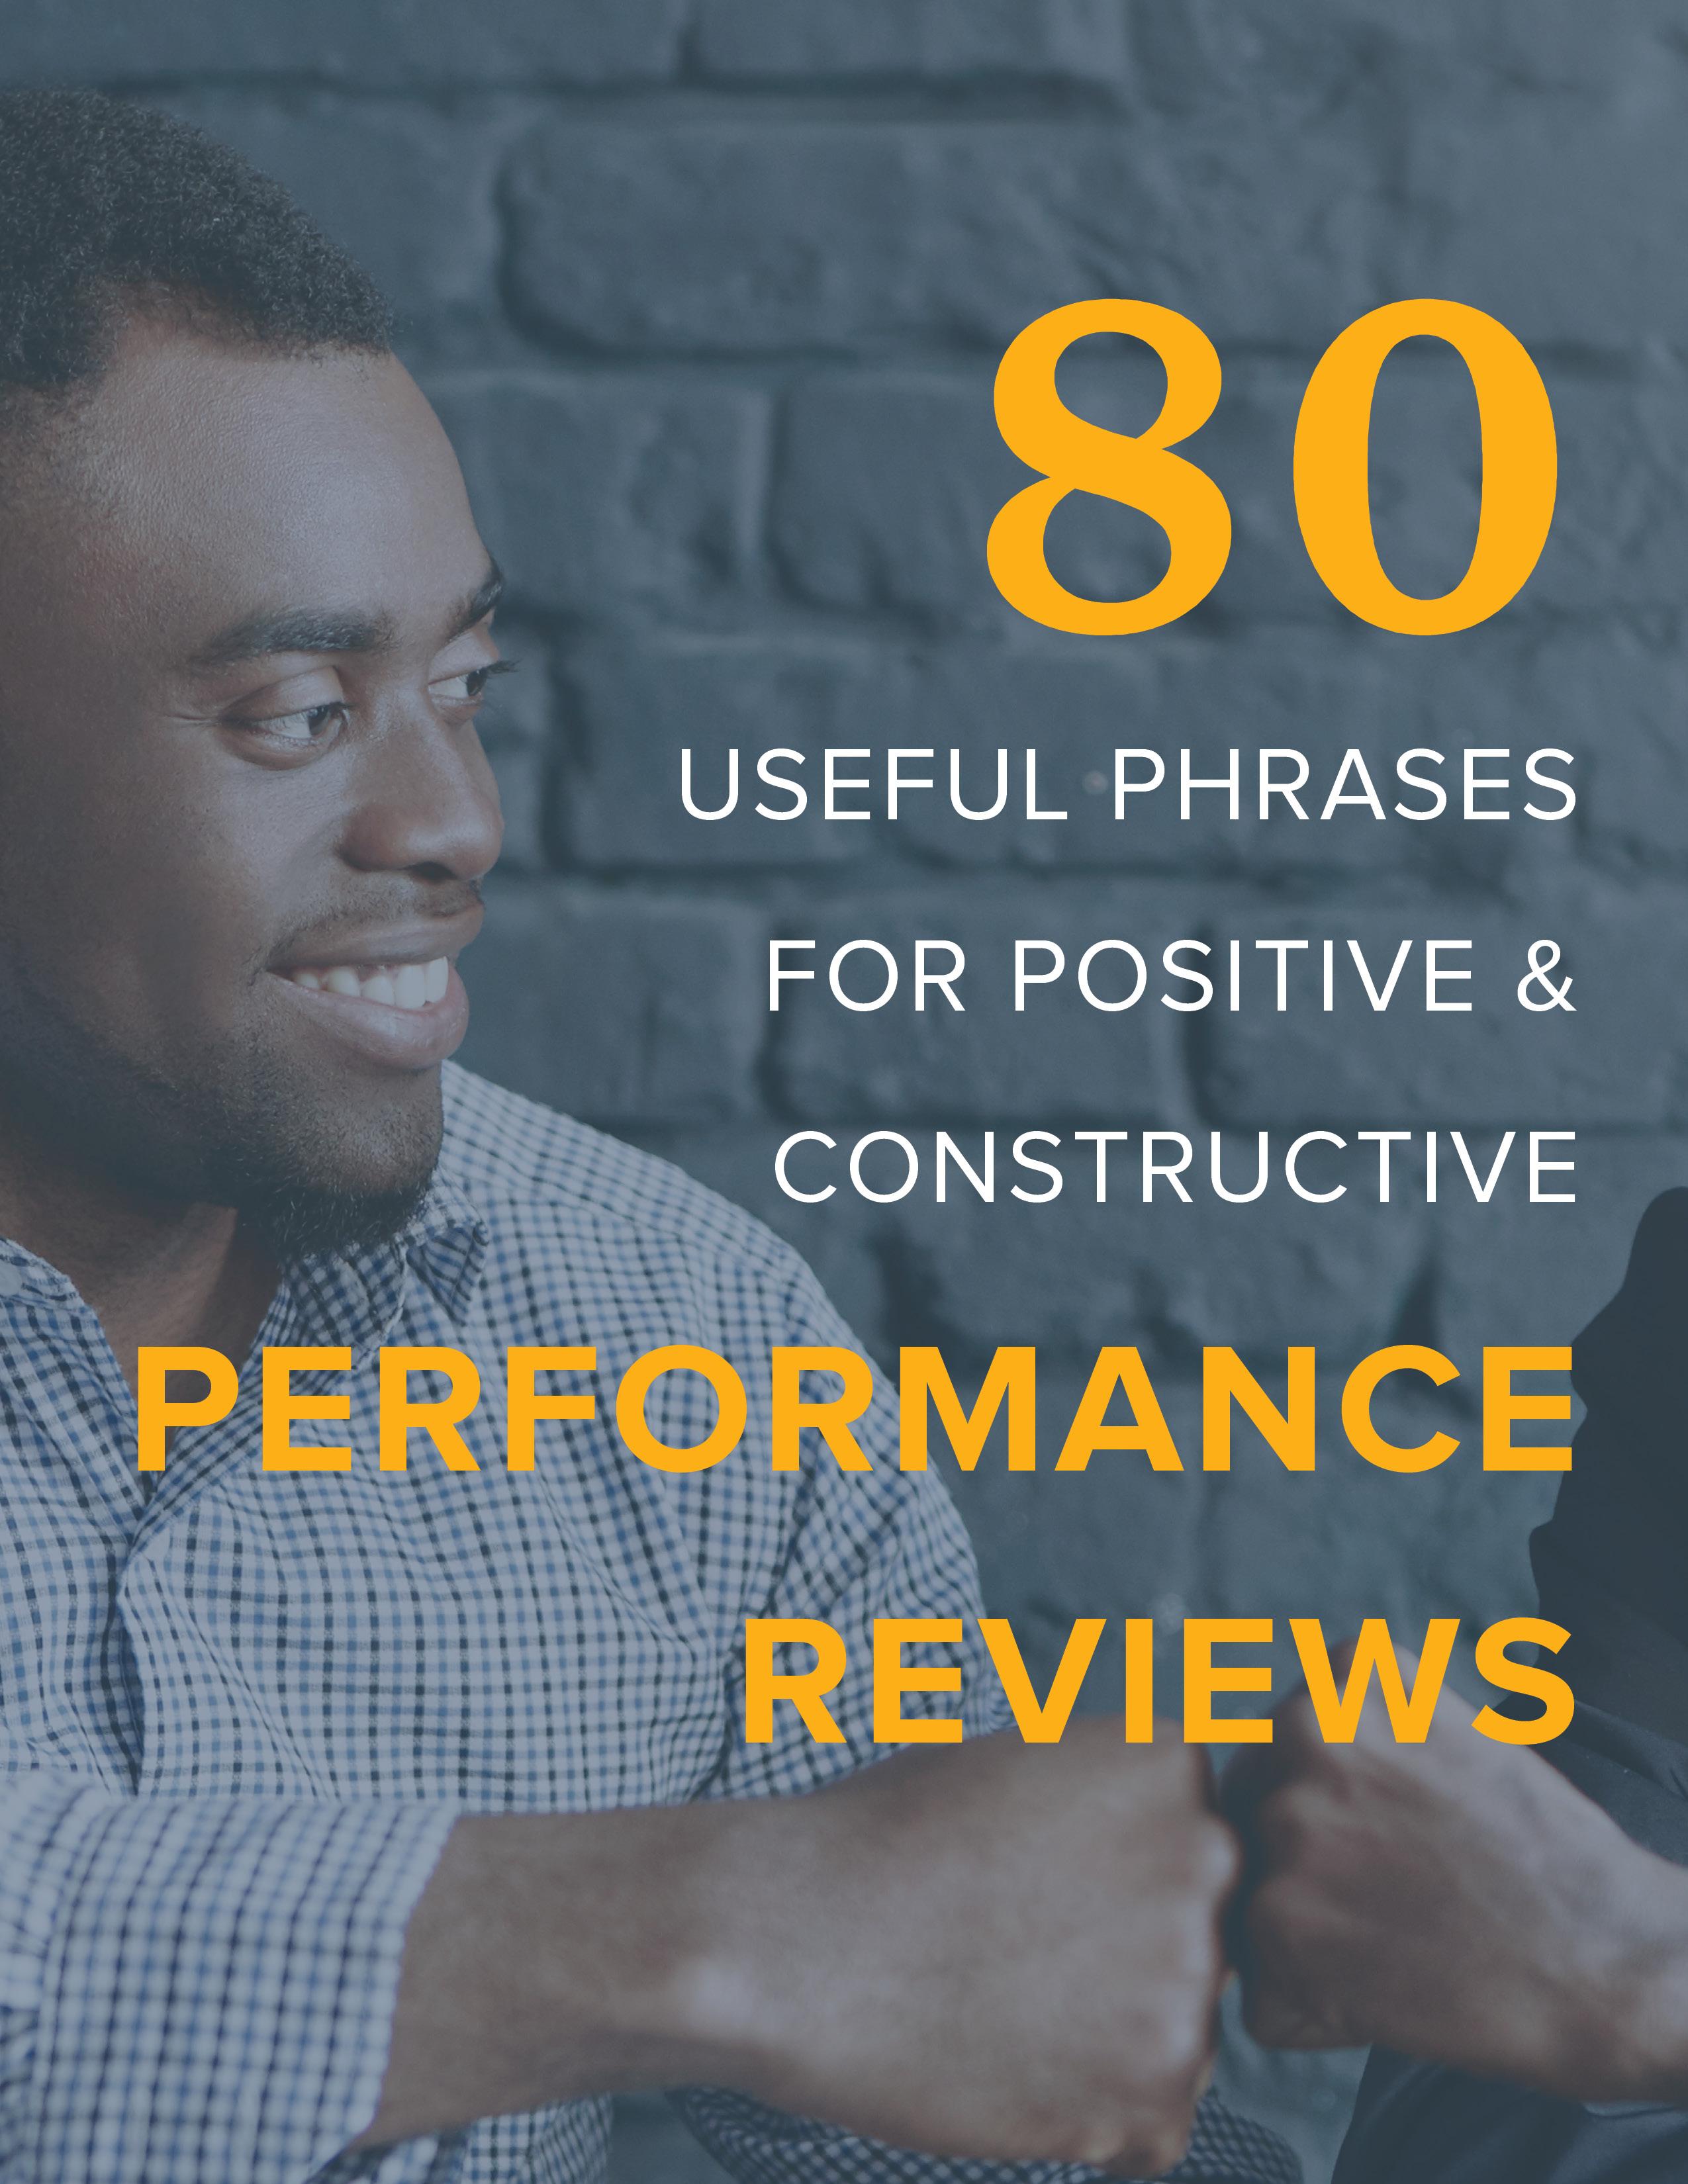 NEOGOV 80 Useful Phrases for Positive & Constructive Performance Reviews